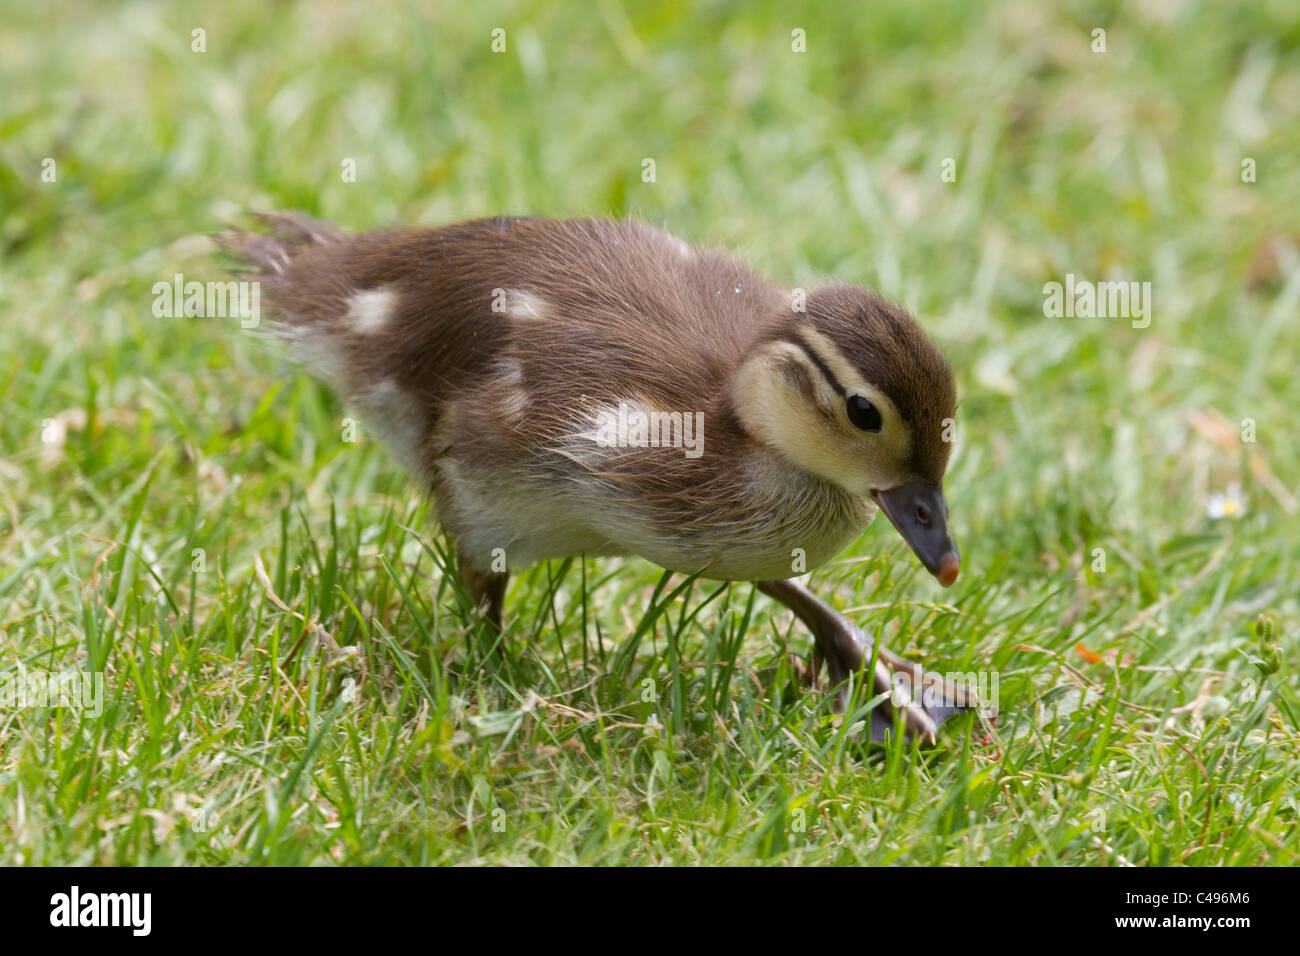 Mallard duckling Anas Platyrhynchos foraging for food on a grass bank - Stock Image